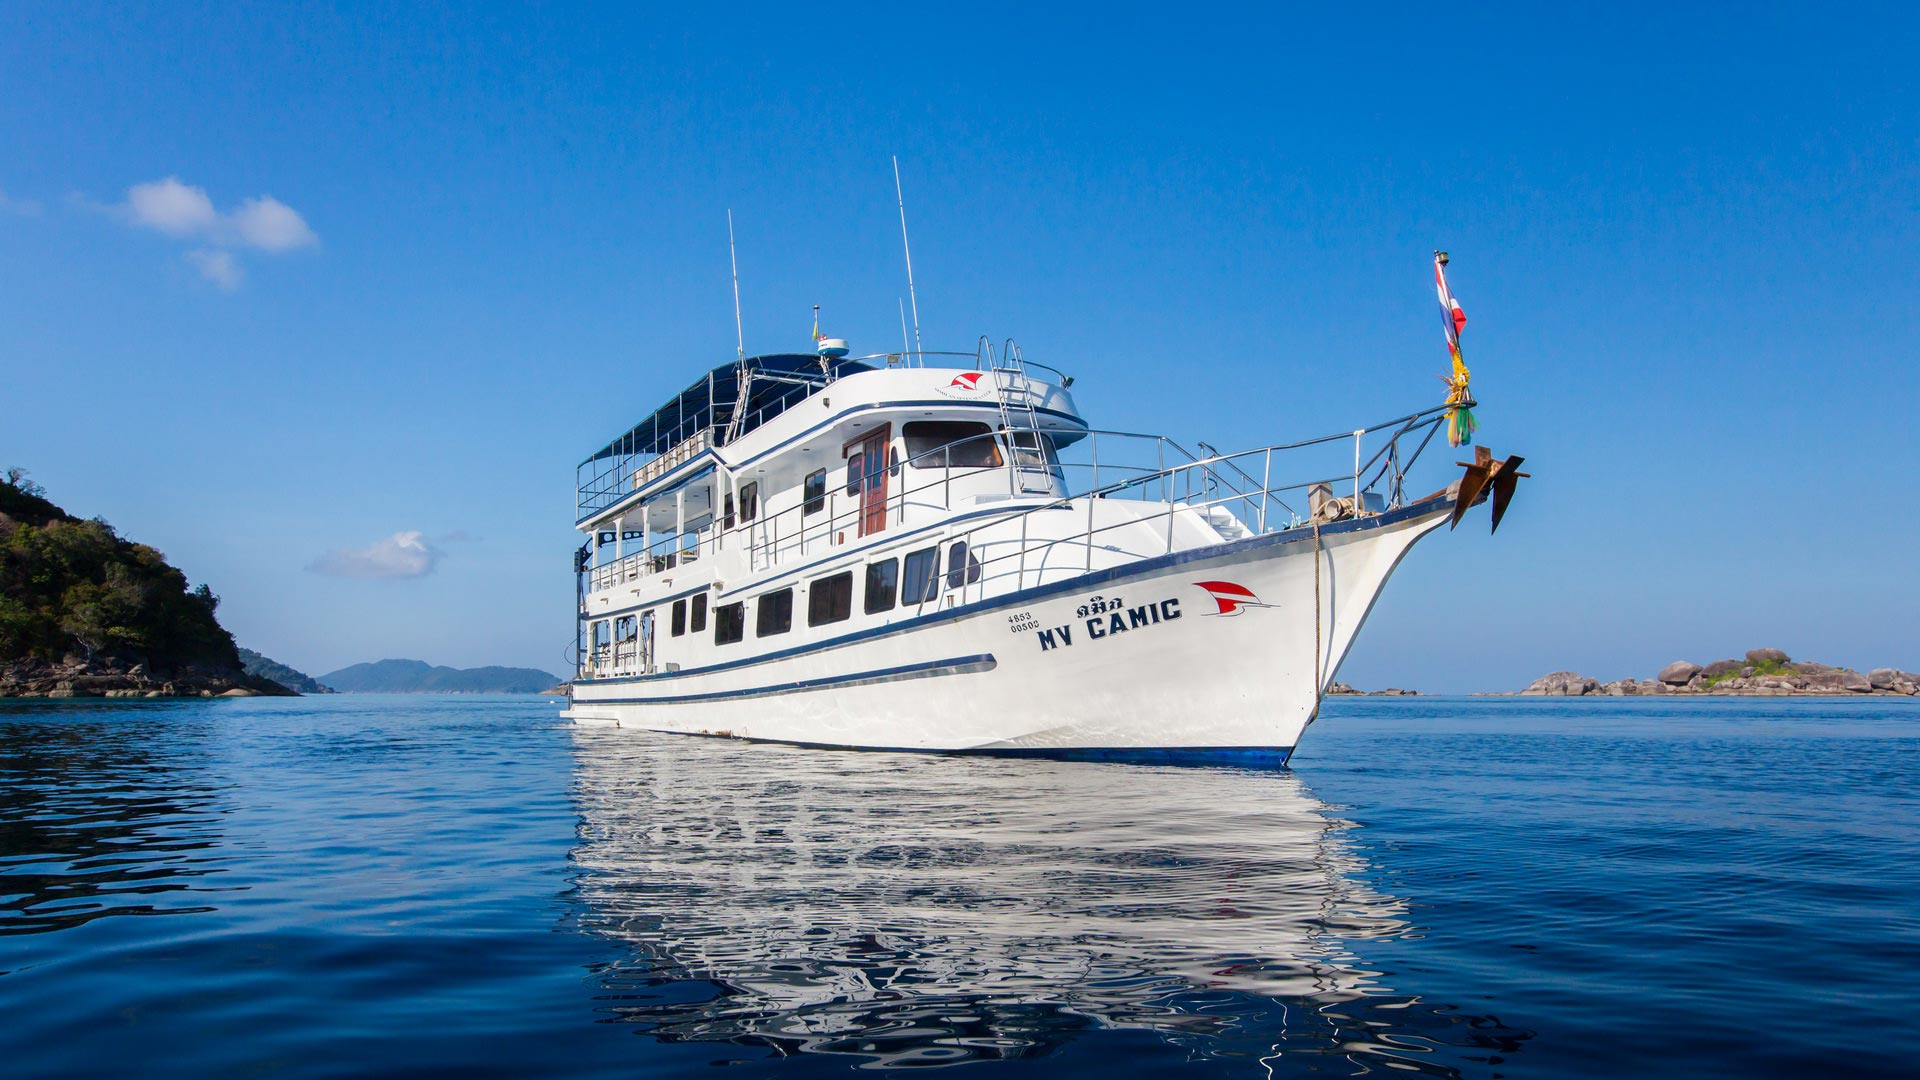 Liveaboard MV Camic with 24 dives at Koh Similan, Richelieu rock, Koh Tachai, and Koh Bon